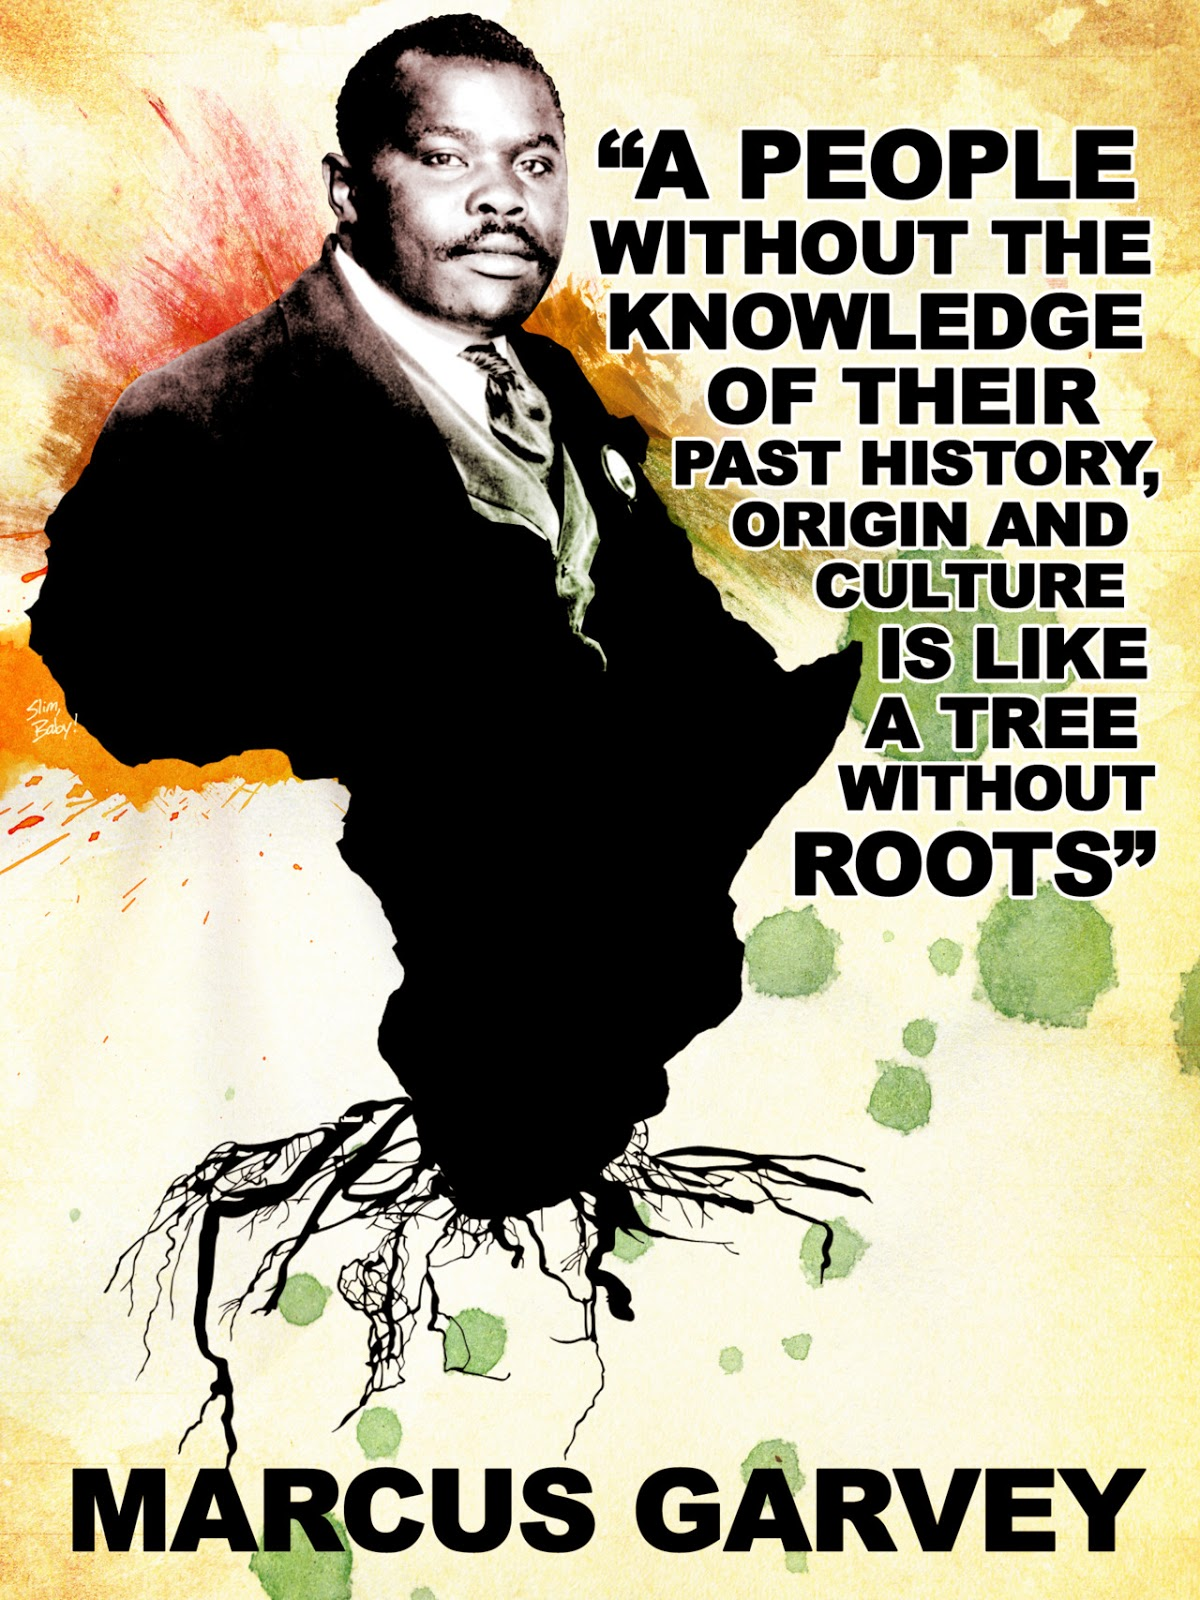 Bubbled Quotes: Marcus Garvey Quotes and Sayings